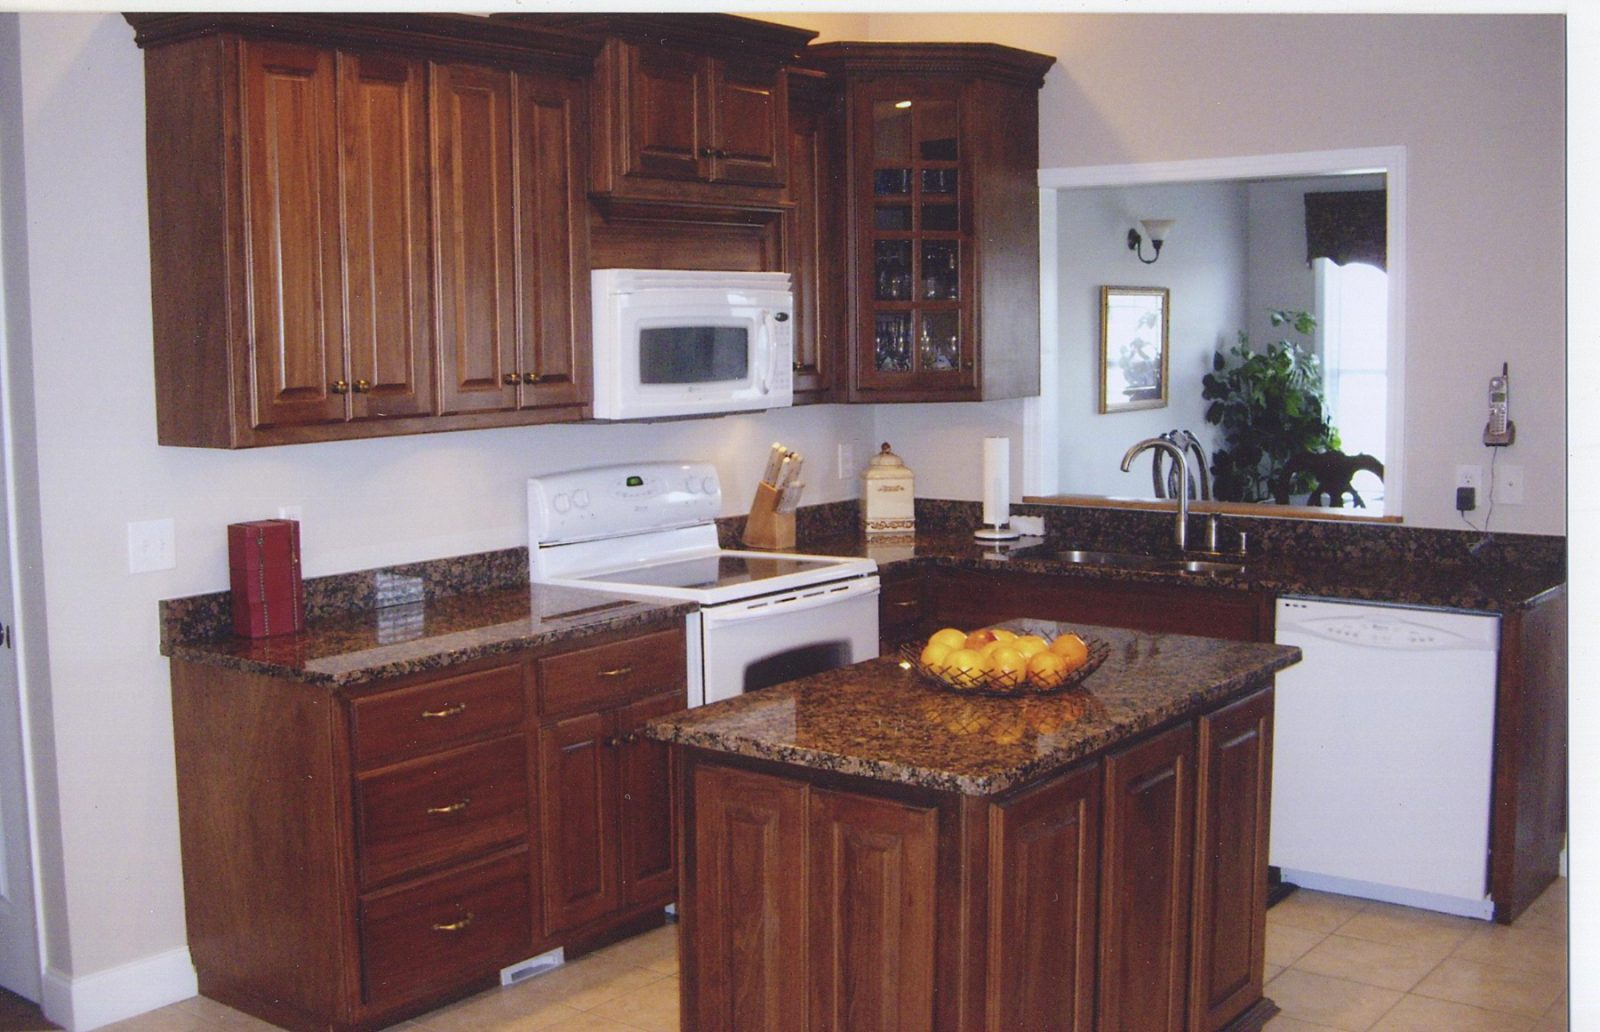 near sales slab place size honed quartz me top online solid surface full warehouse choices countertops counter granite kitchen supplies engineered marble countertop of overlay discount